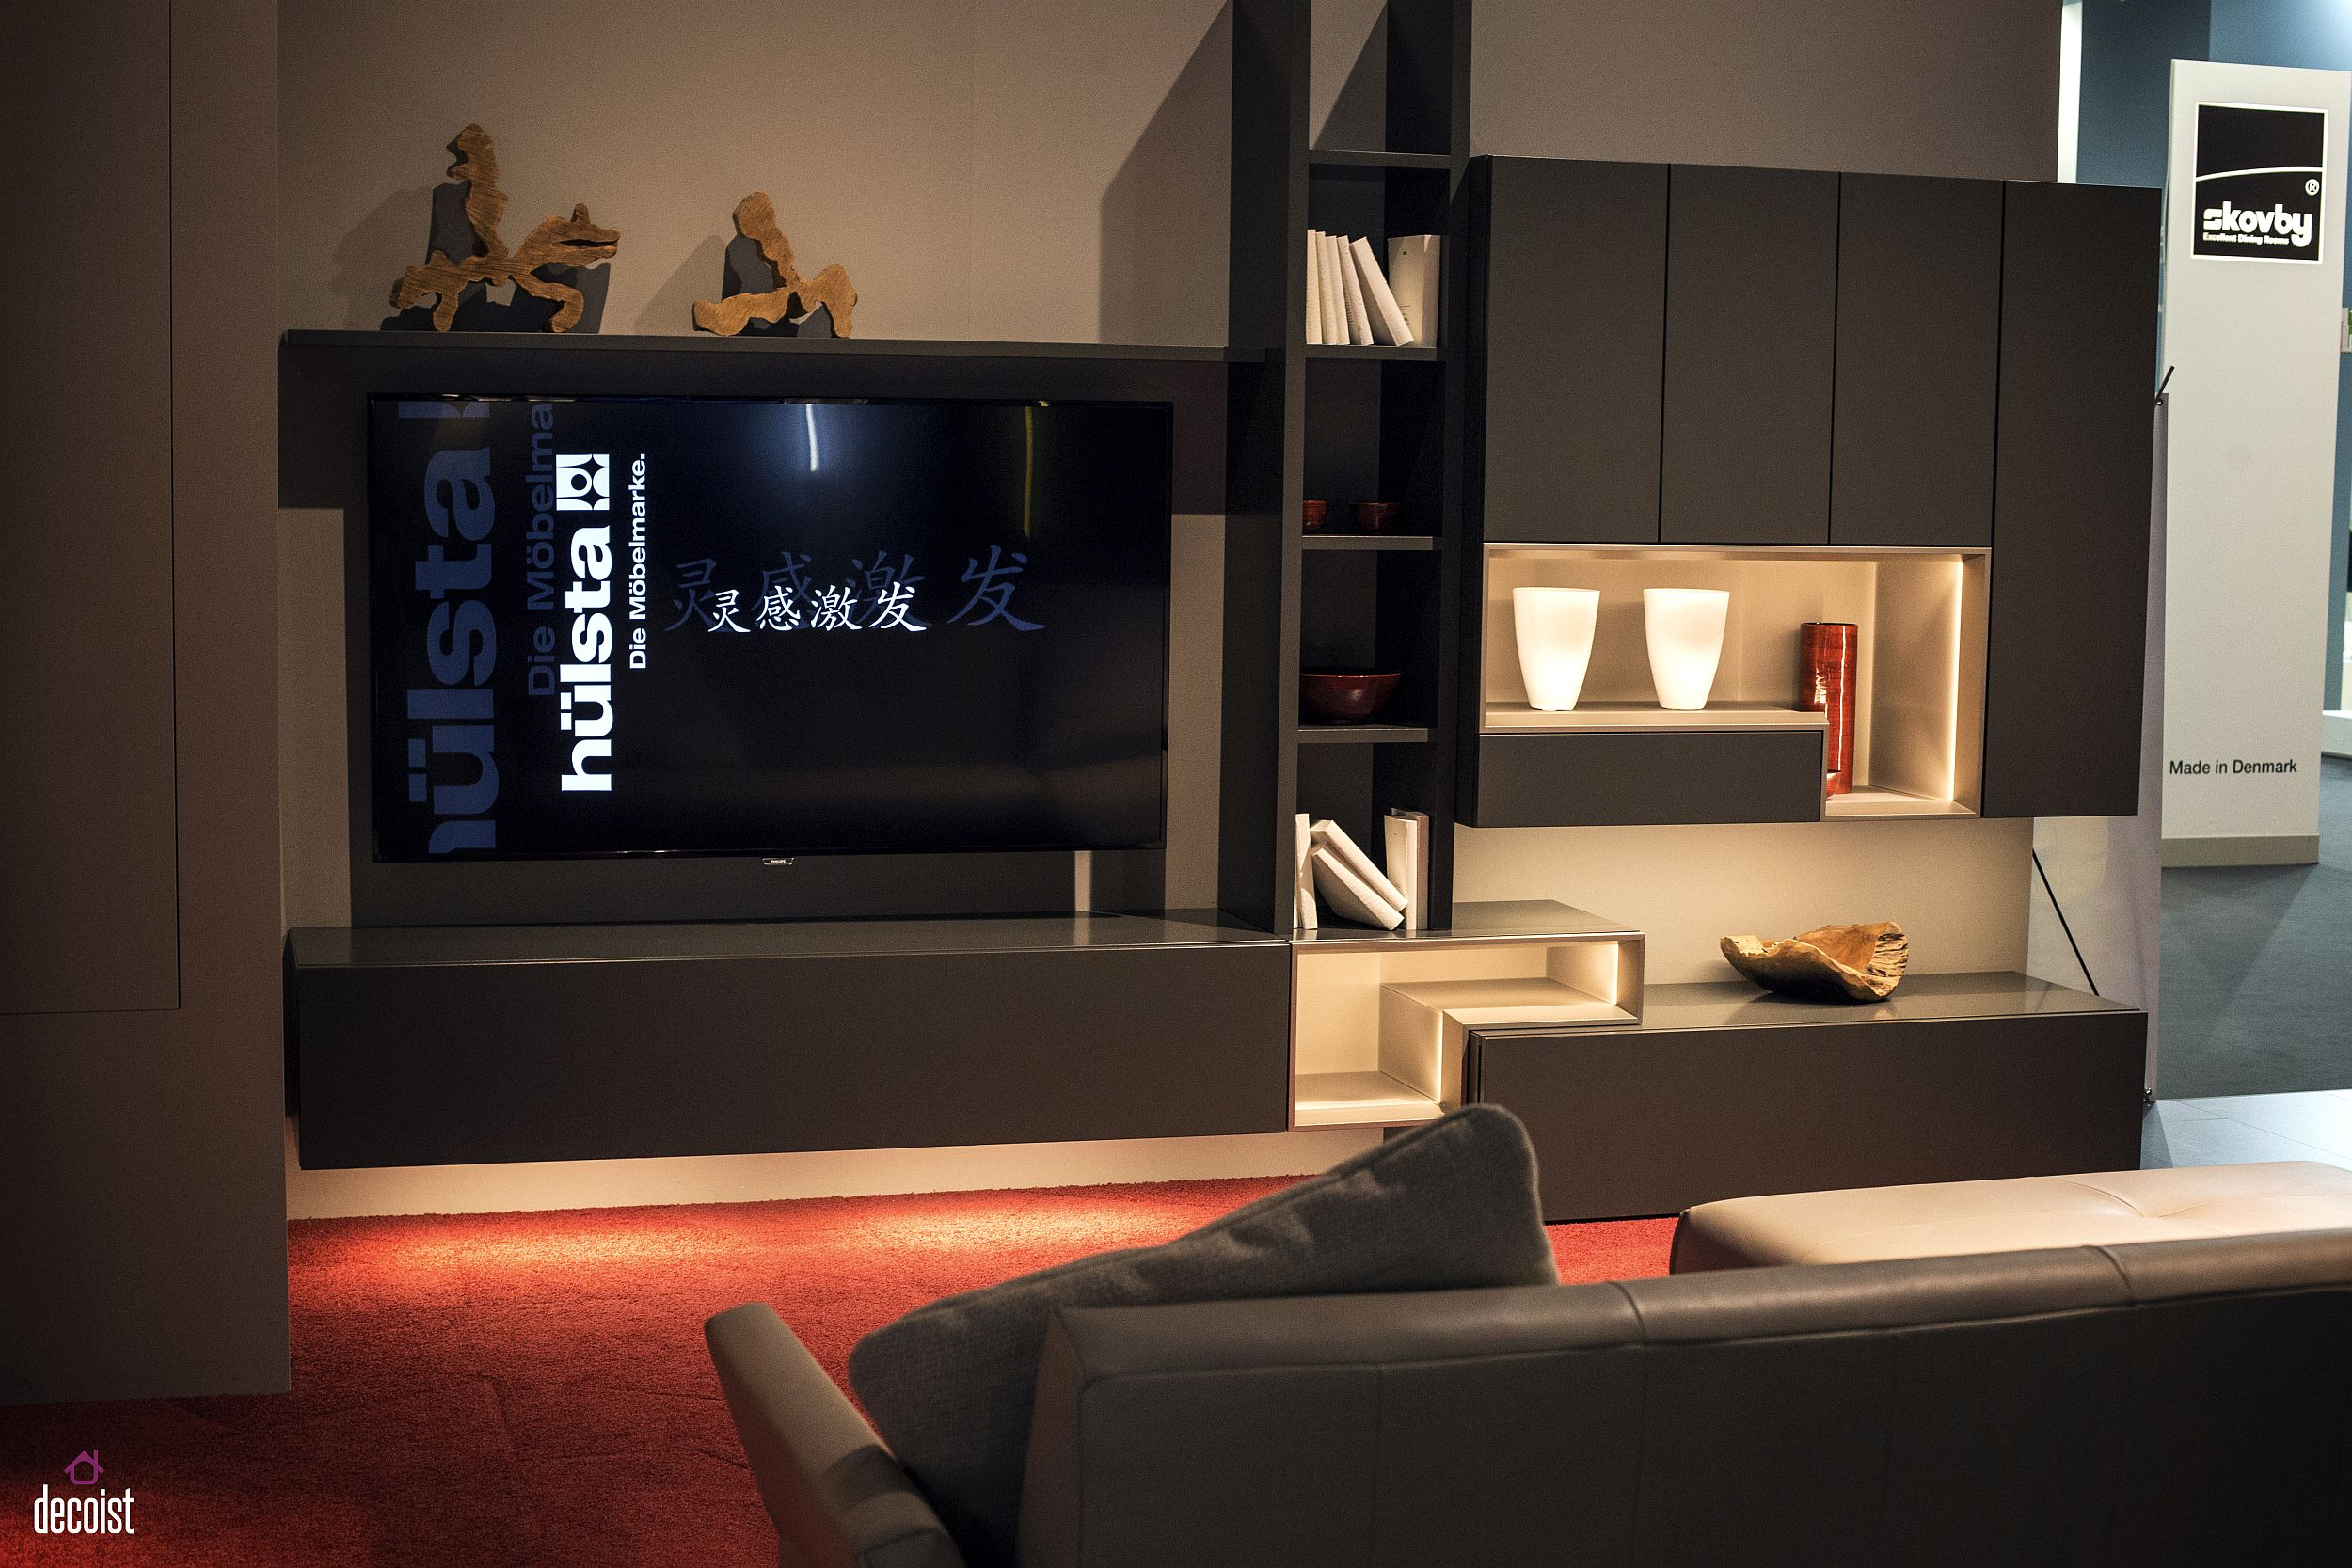 Turn your TV into the focal point of your media room with the right TV stand